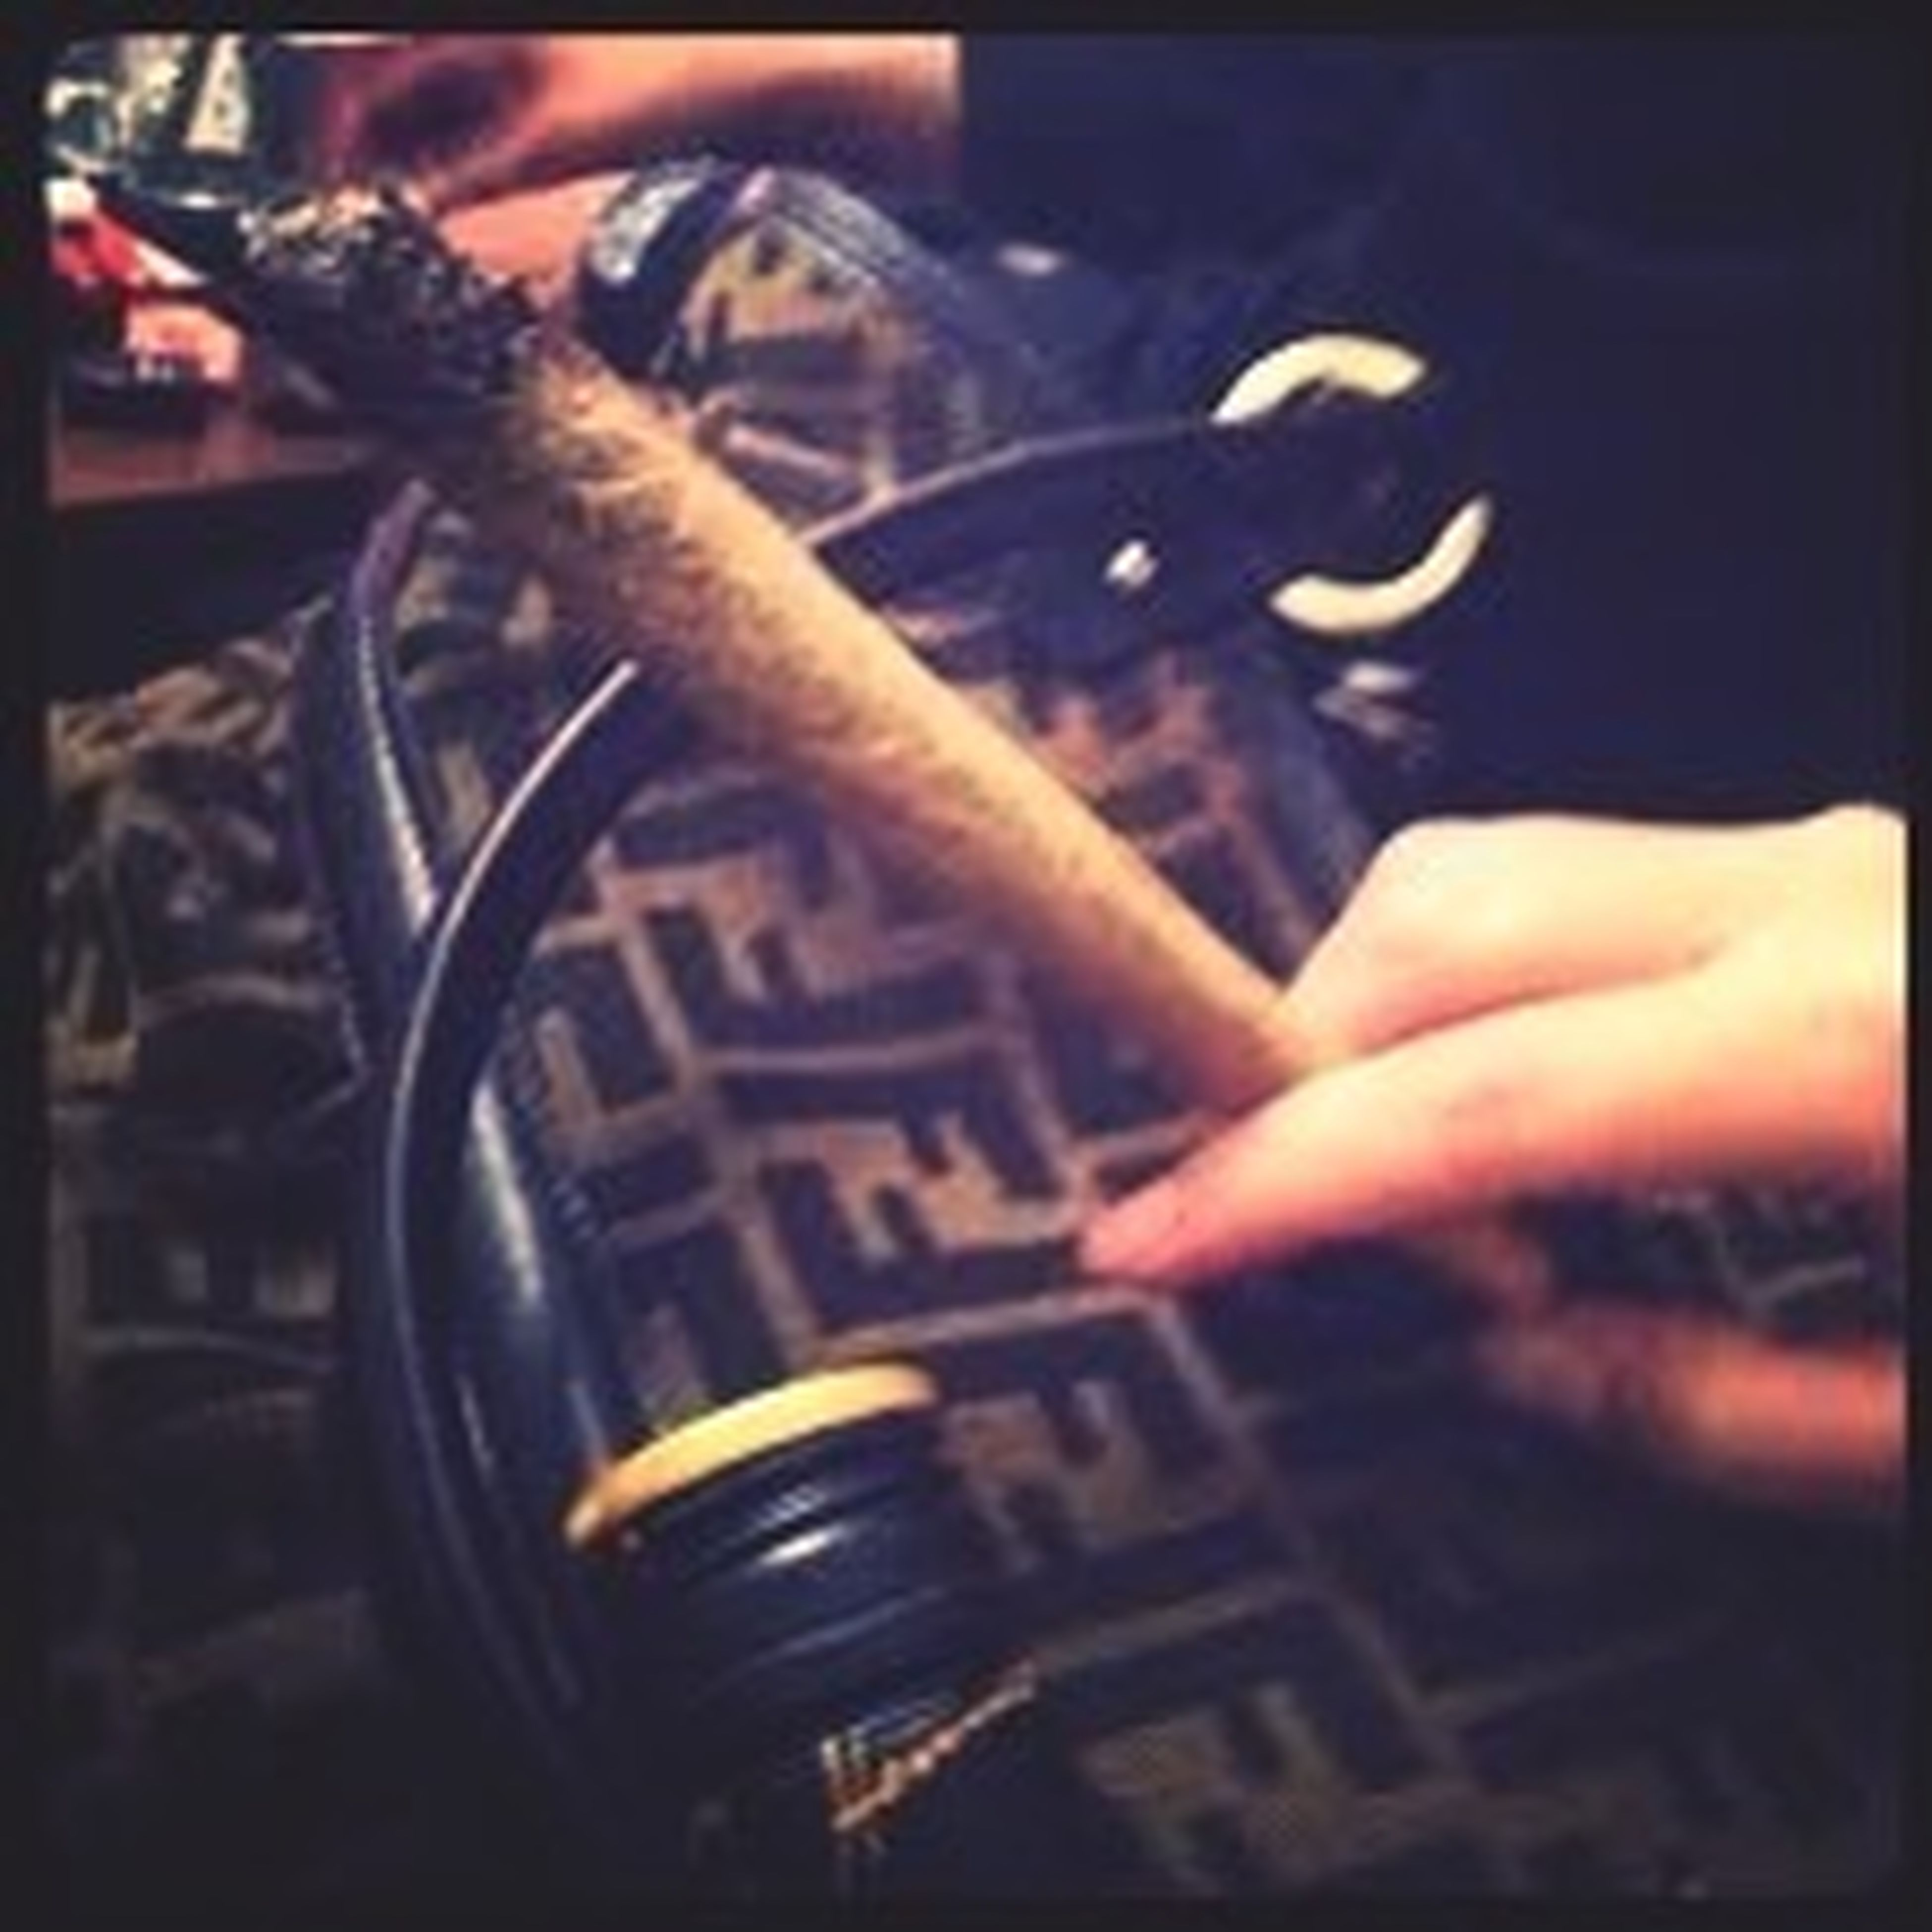 #puff'n #blunt #Tuesday #Morning #Cloud9